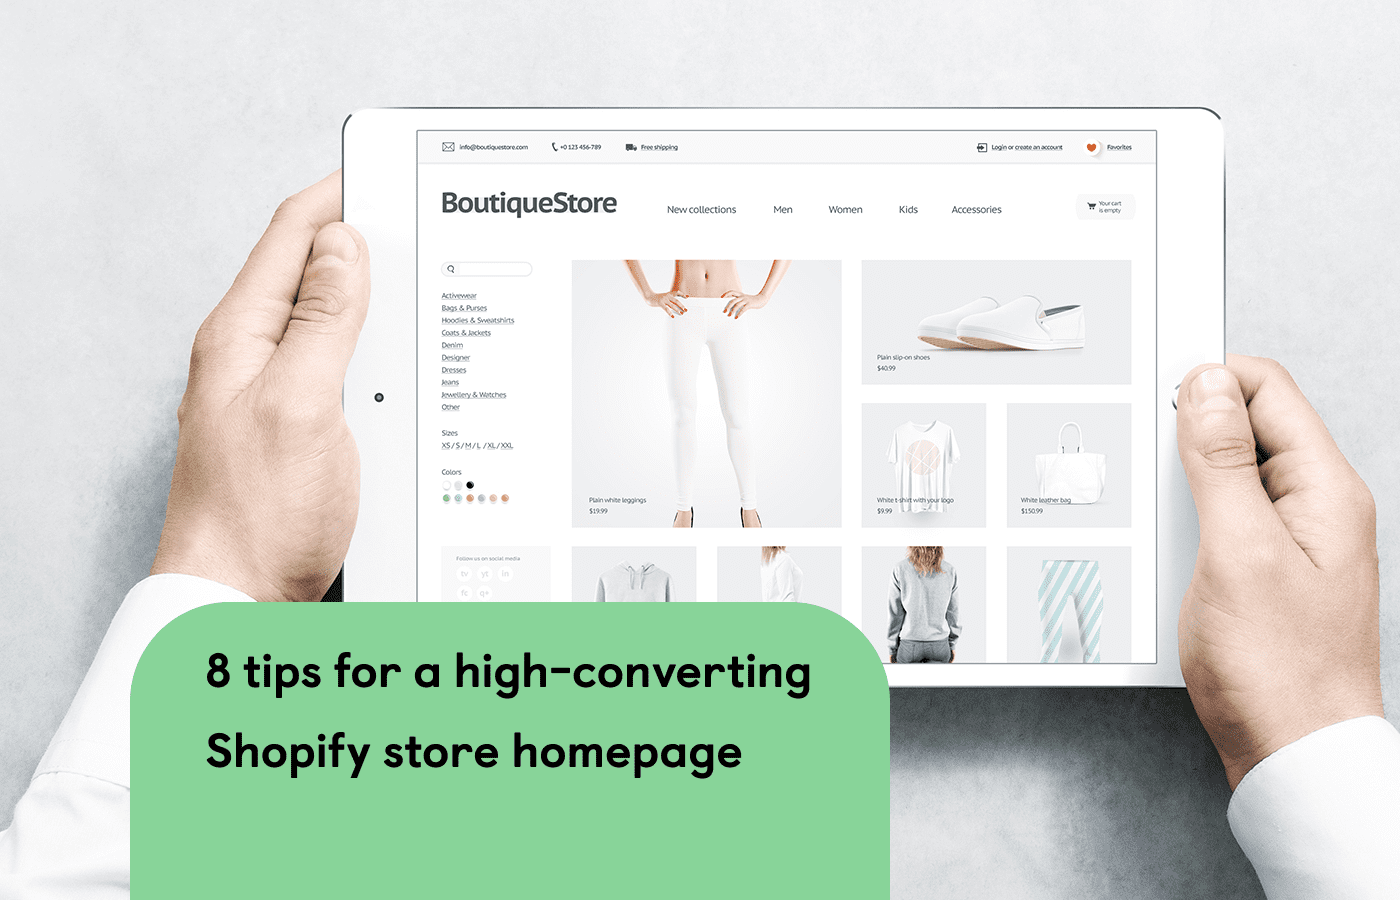 8 Rules to optimize for homepage conversions from top Shopify websites